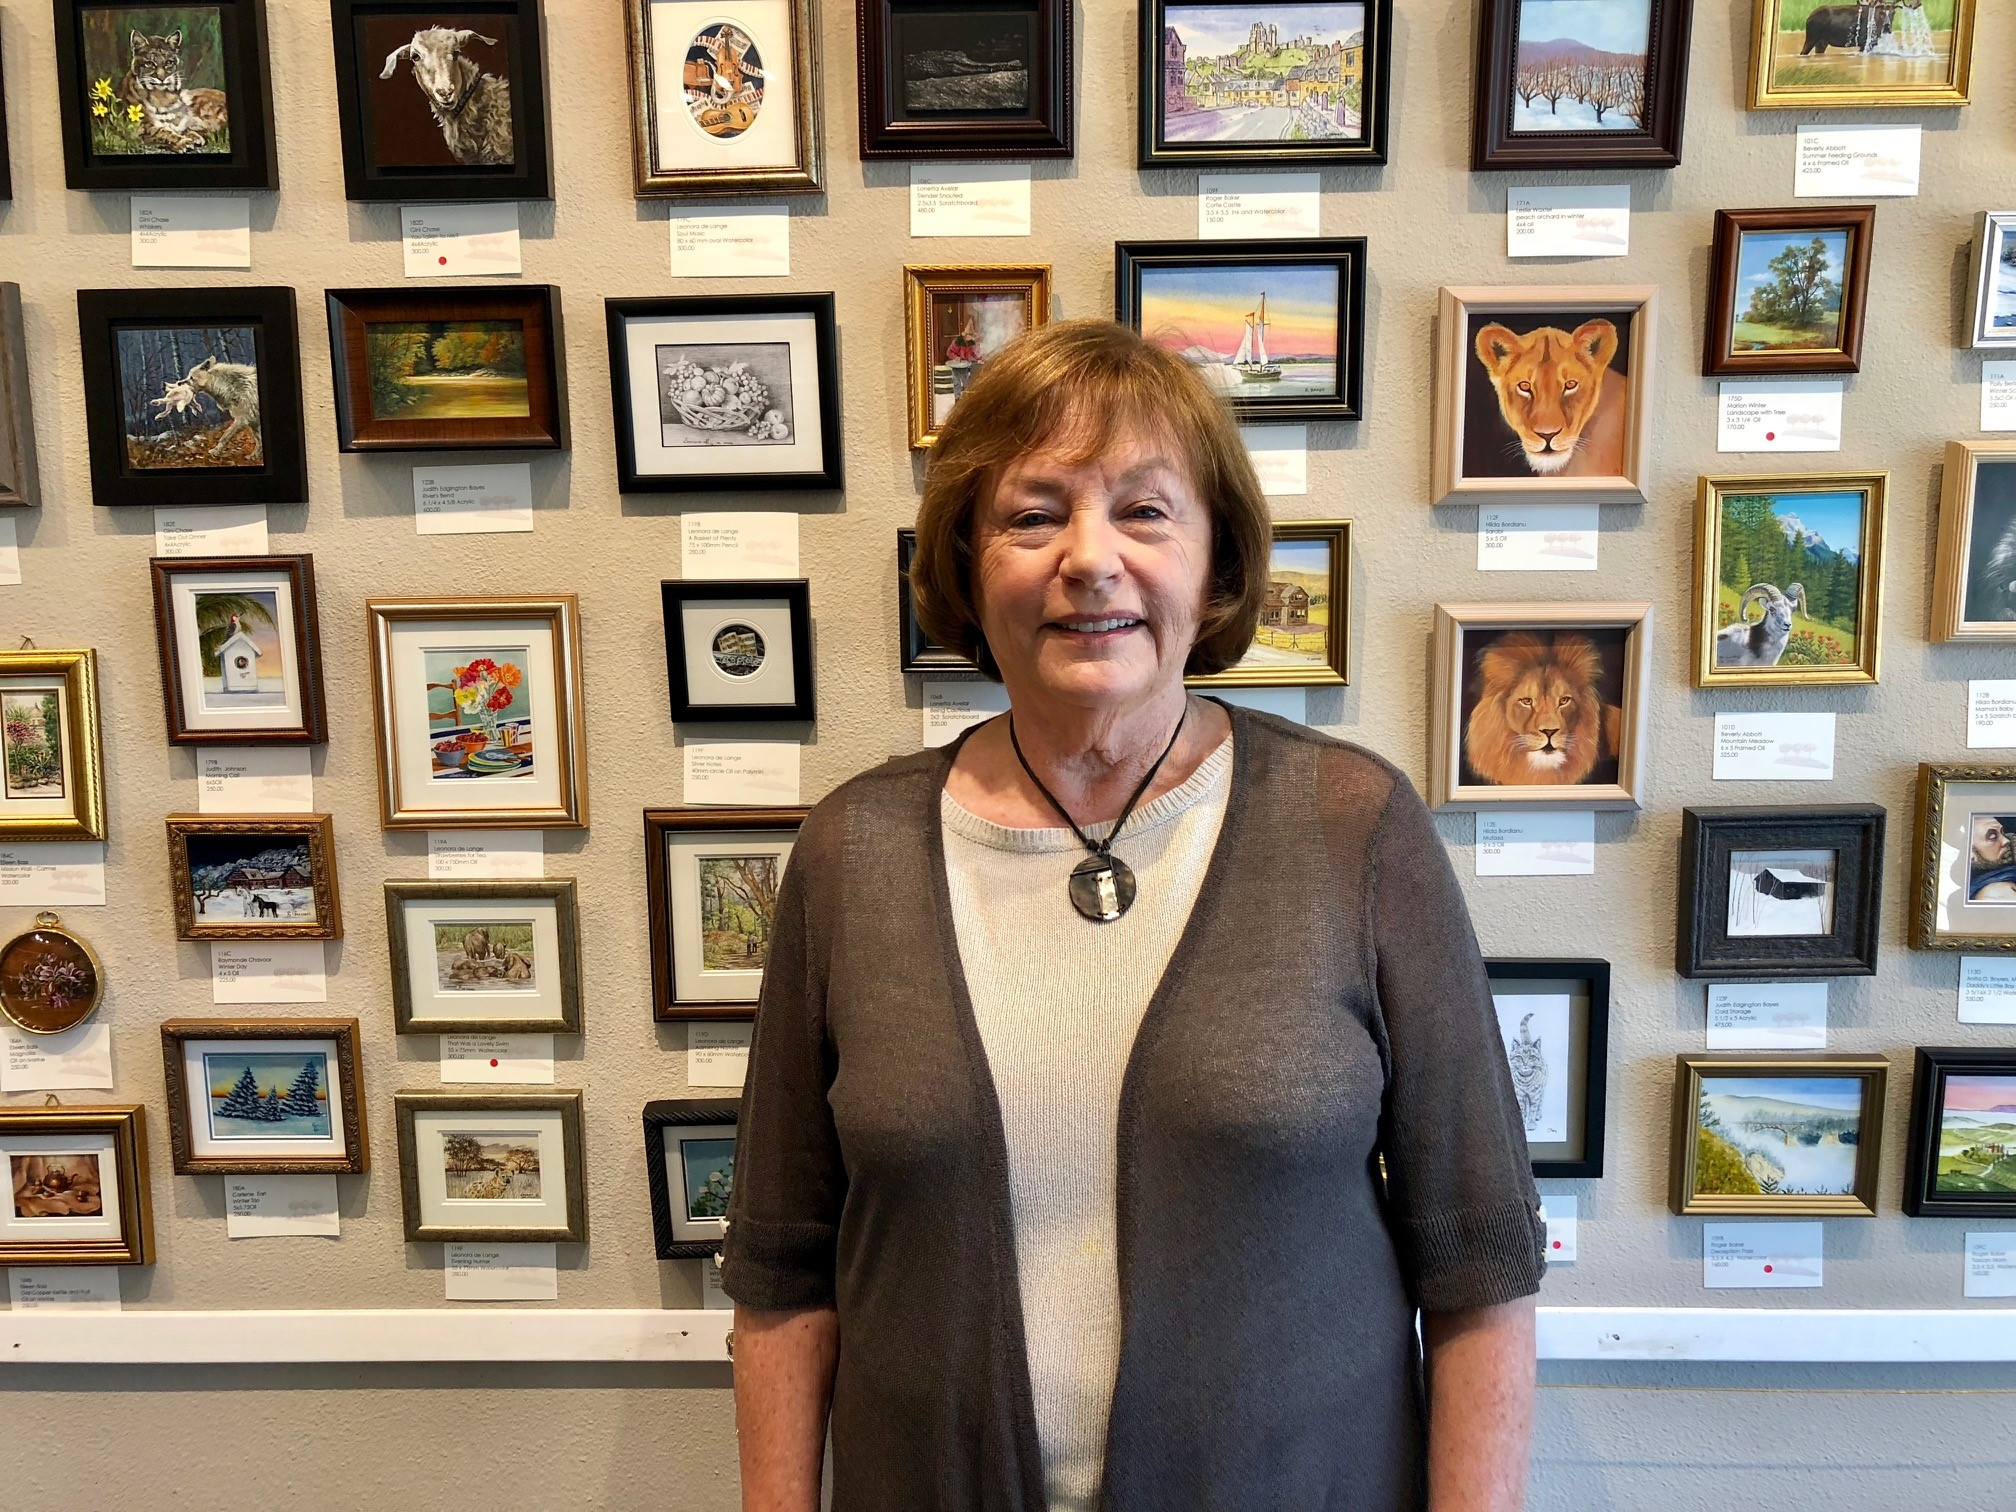 Lois Haskell, Artist and Chair of the{ }The Parklane Gallery Annual International Miniature Show in Kirkland. It features around 400 amazing works of art. Each is 5 x 5 or smaller.